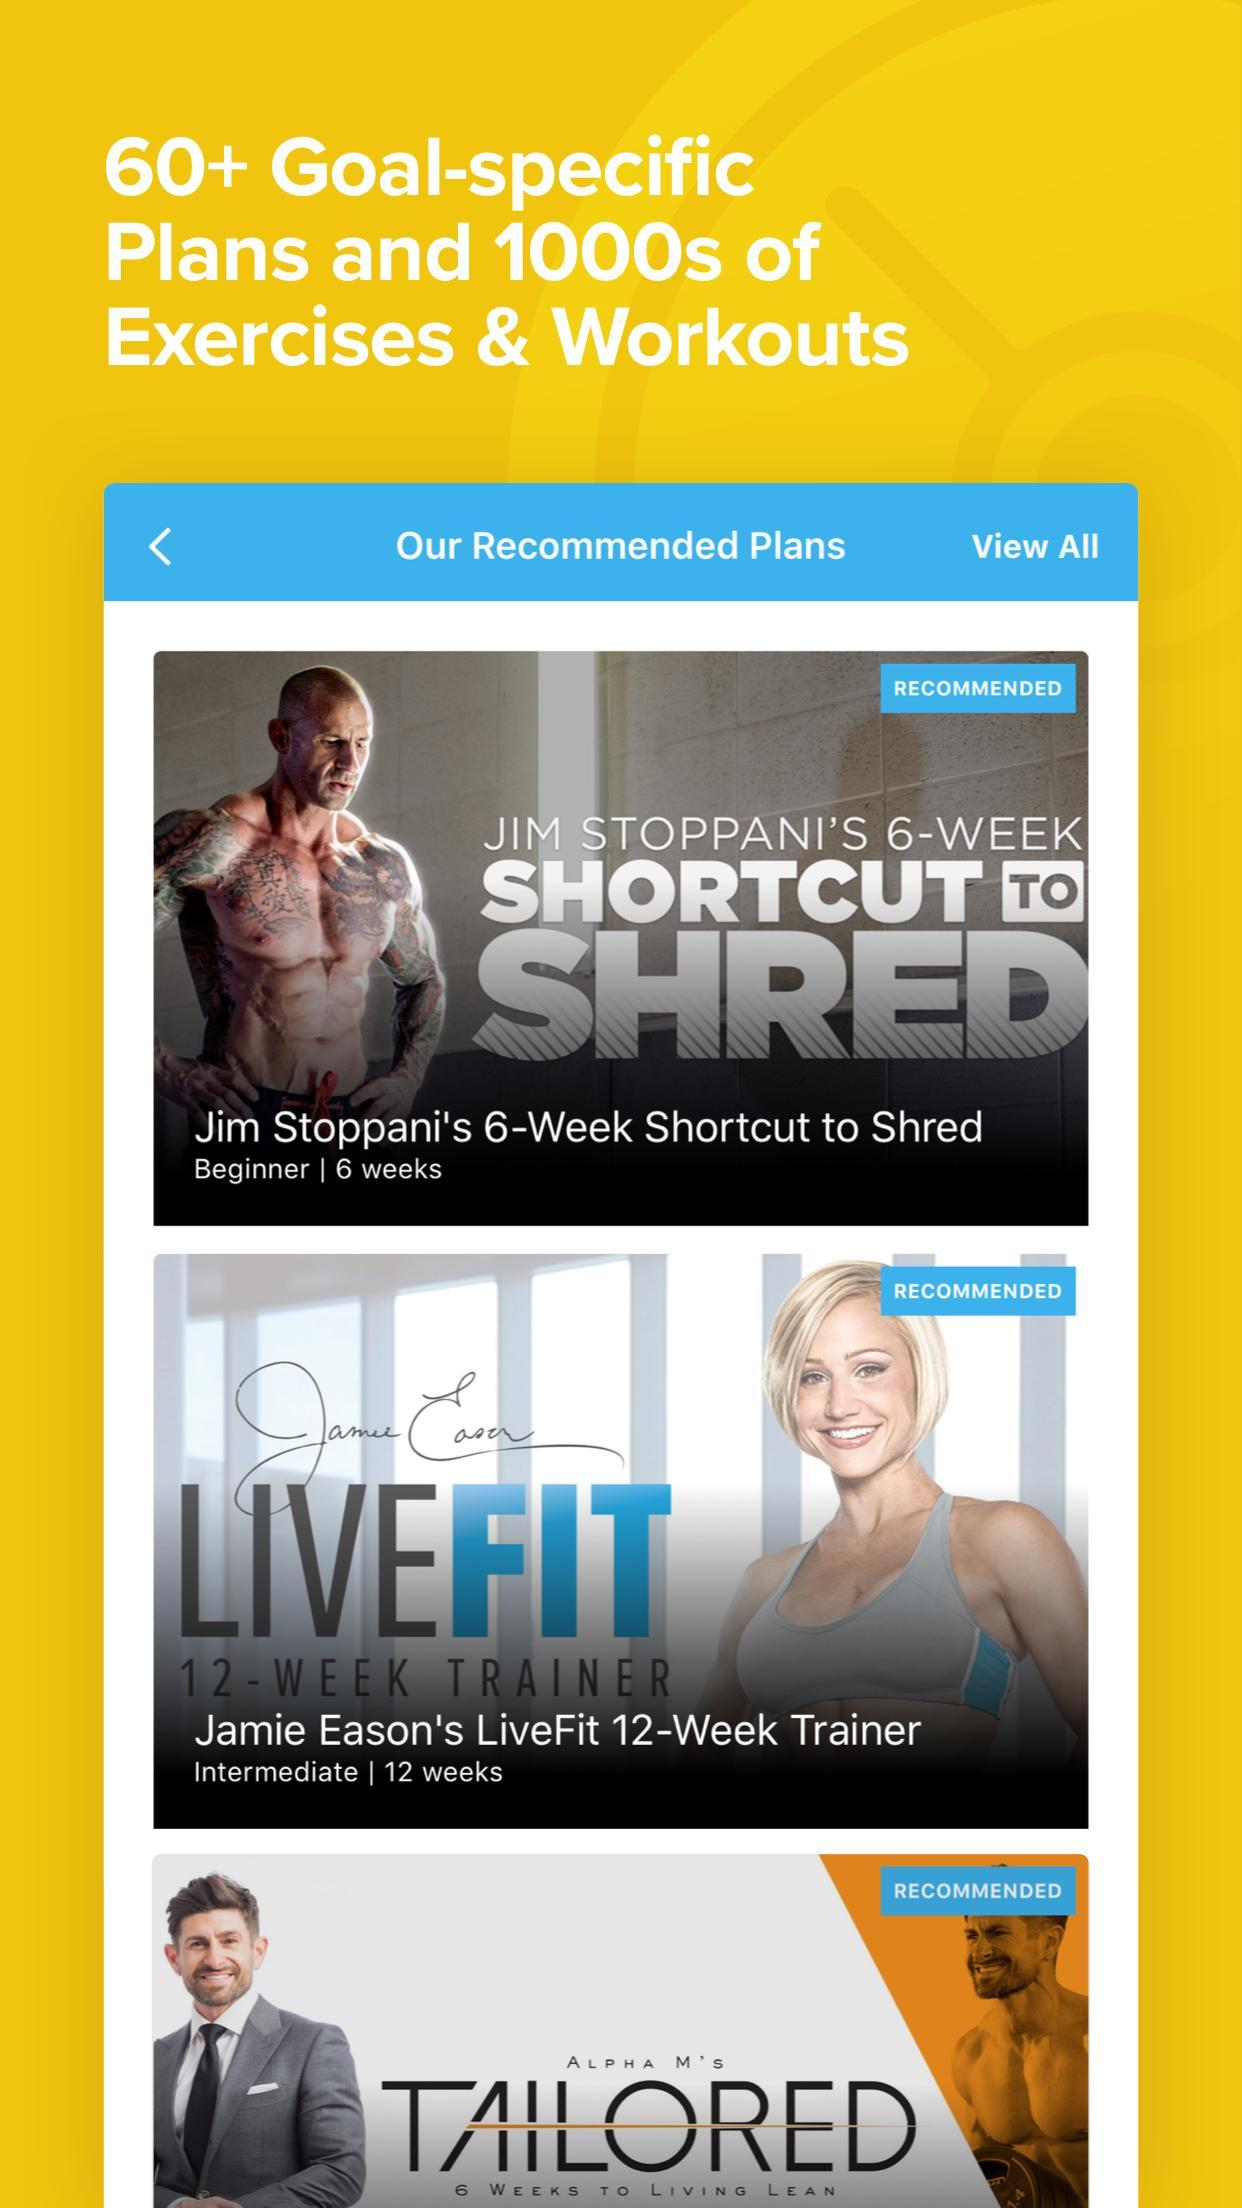 Bodybuilding com All Access: Workouts & Training for Android